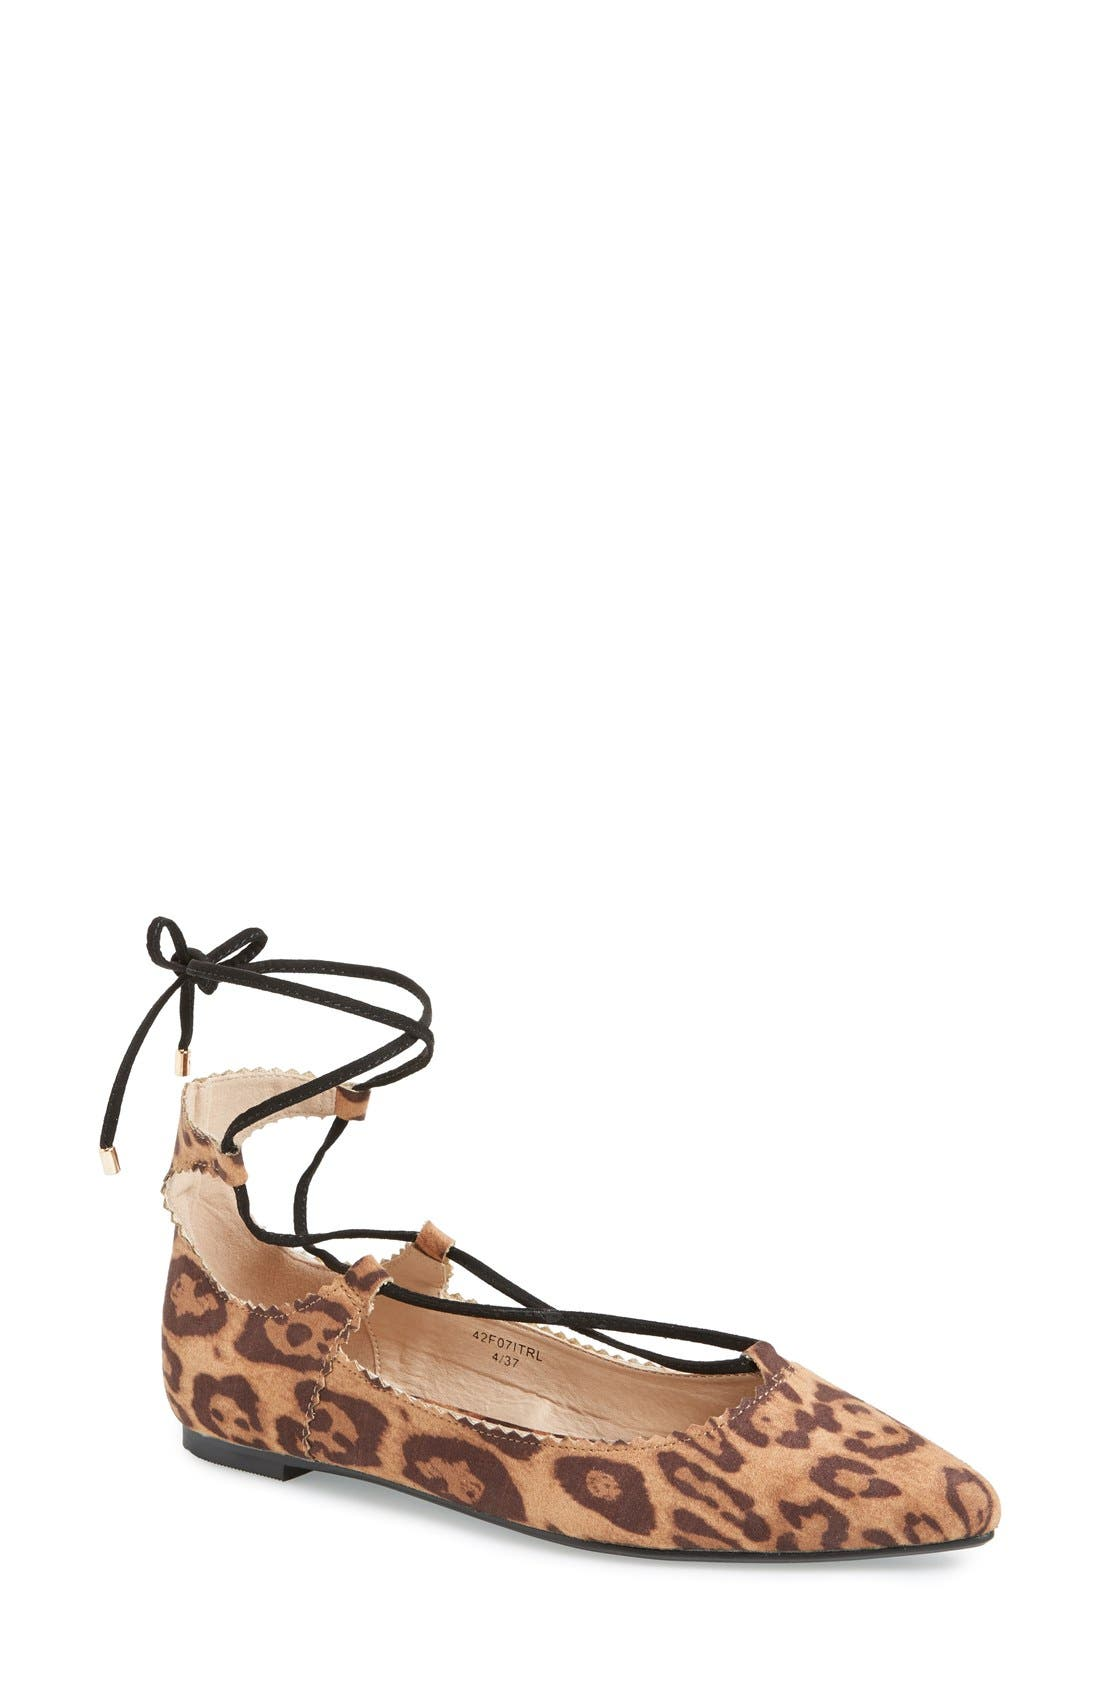 'Finest' Pointy Toe Ghillie Flat,                         Main,                         color, Brown Multi